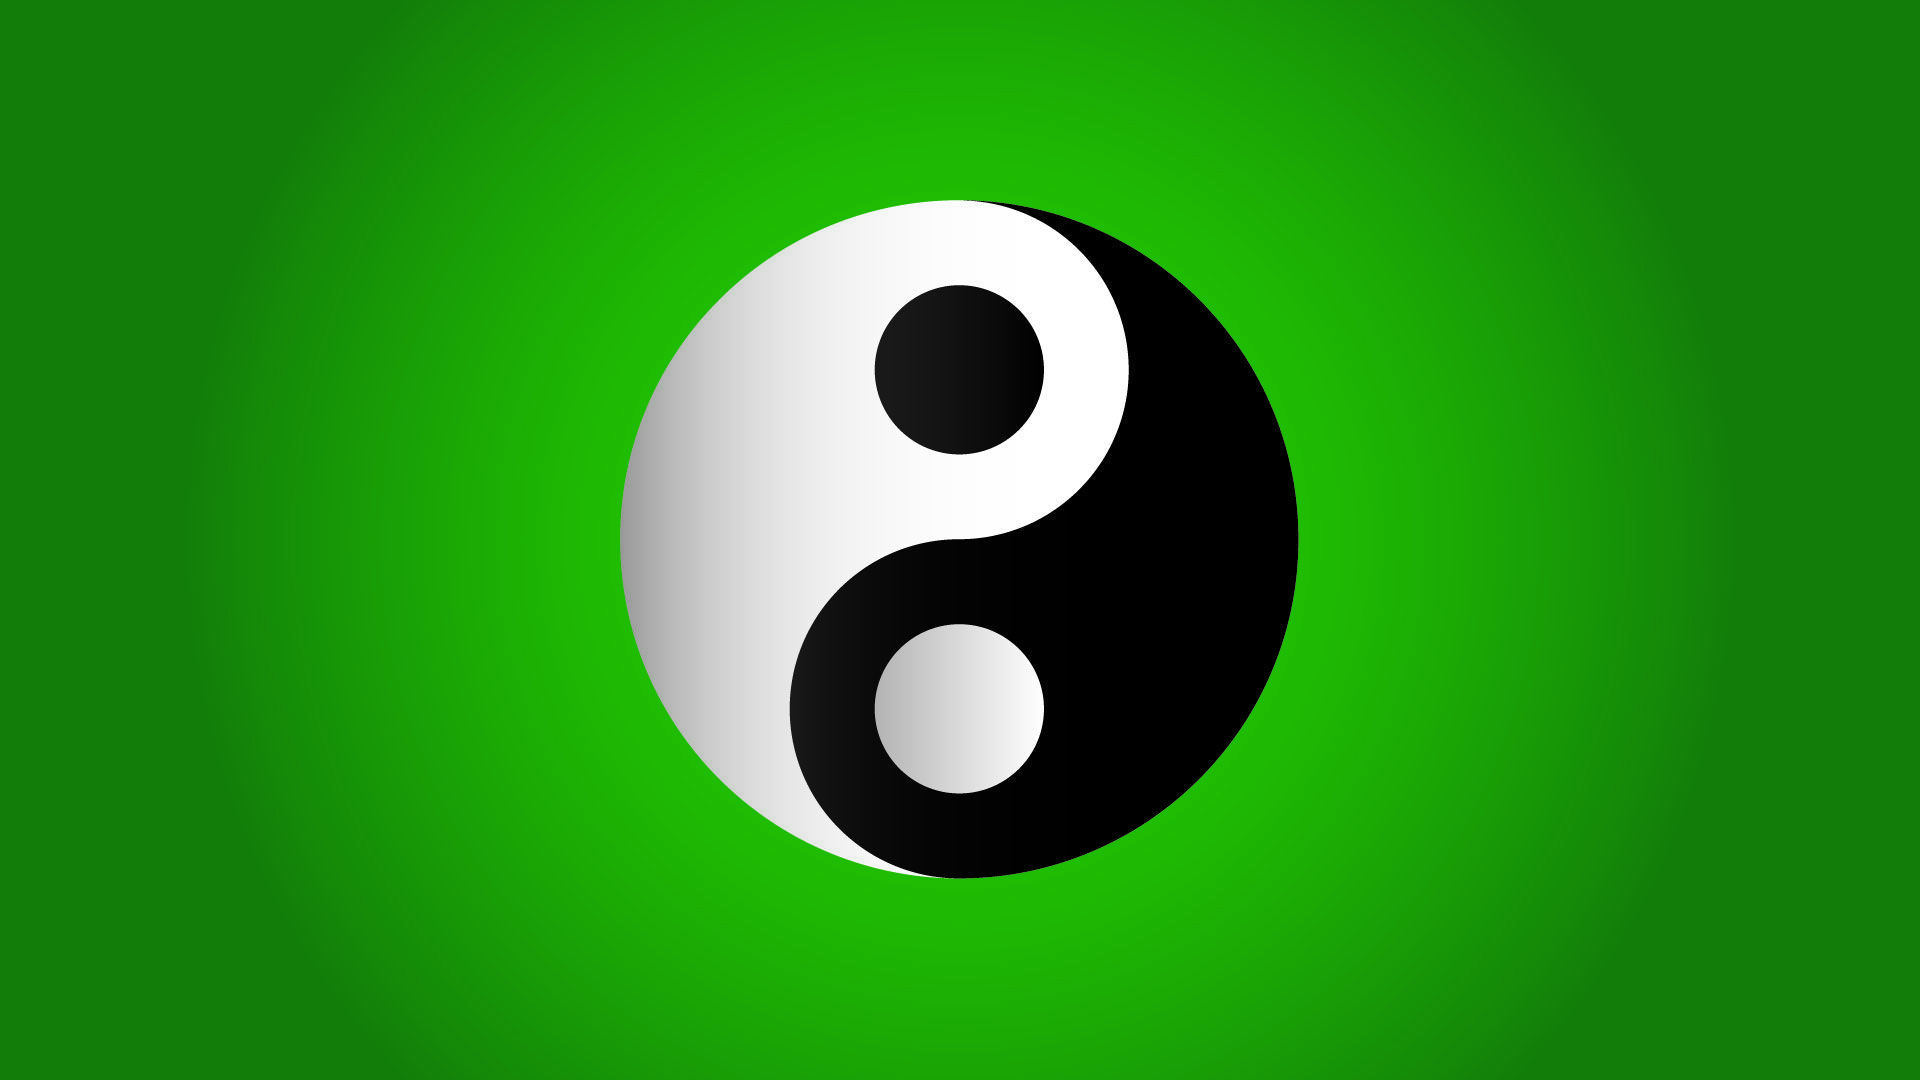 Yin-Yang-HD-Backgrounds-×-Yin-And-Yang-wallpaper-wpc90010867